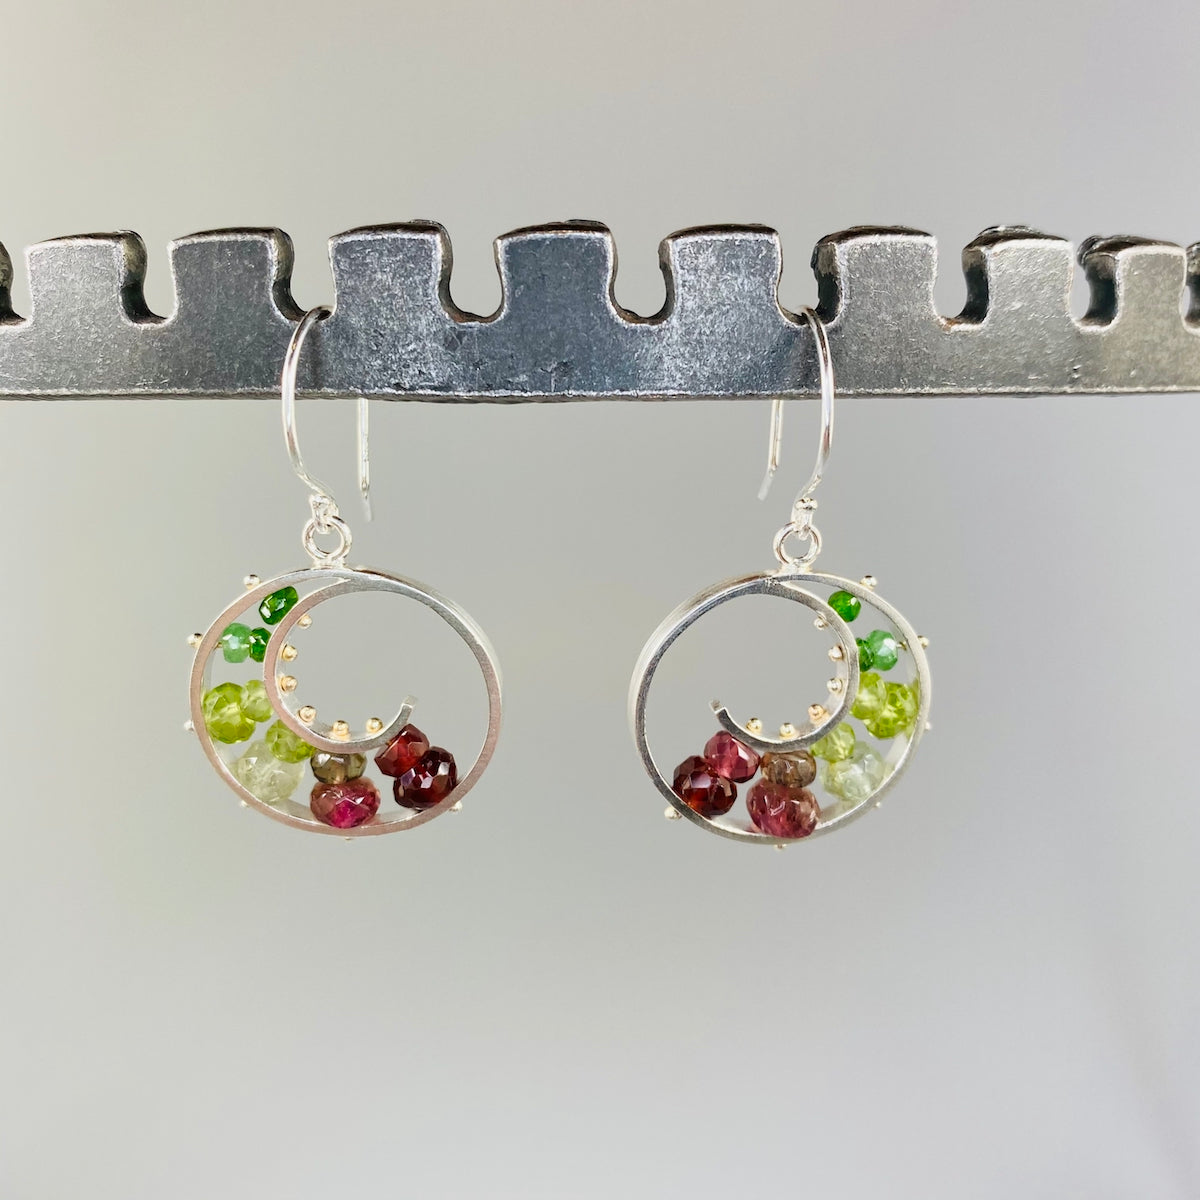 Medium Spiral Earrings in Watermelon - Heart of the Home PA